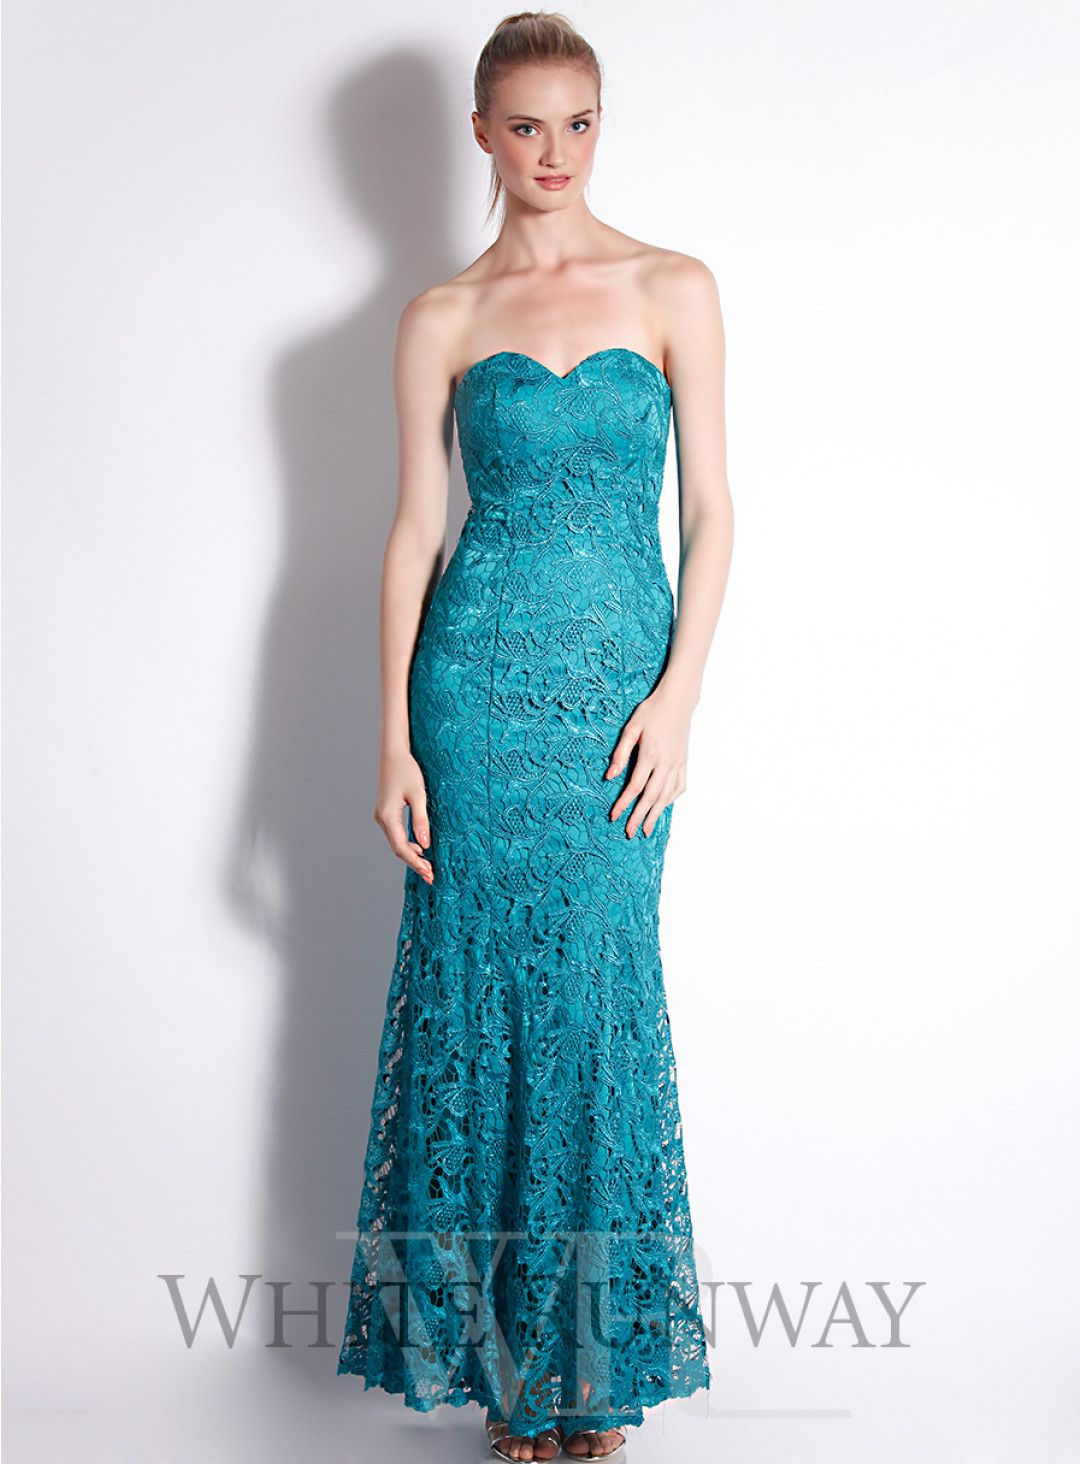 Enchanting Prom Dresses Hagerstown Md Pictures - Wedding Dress Ideas ...